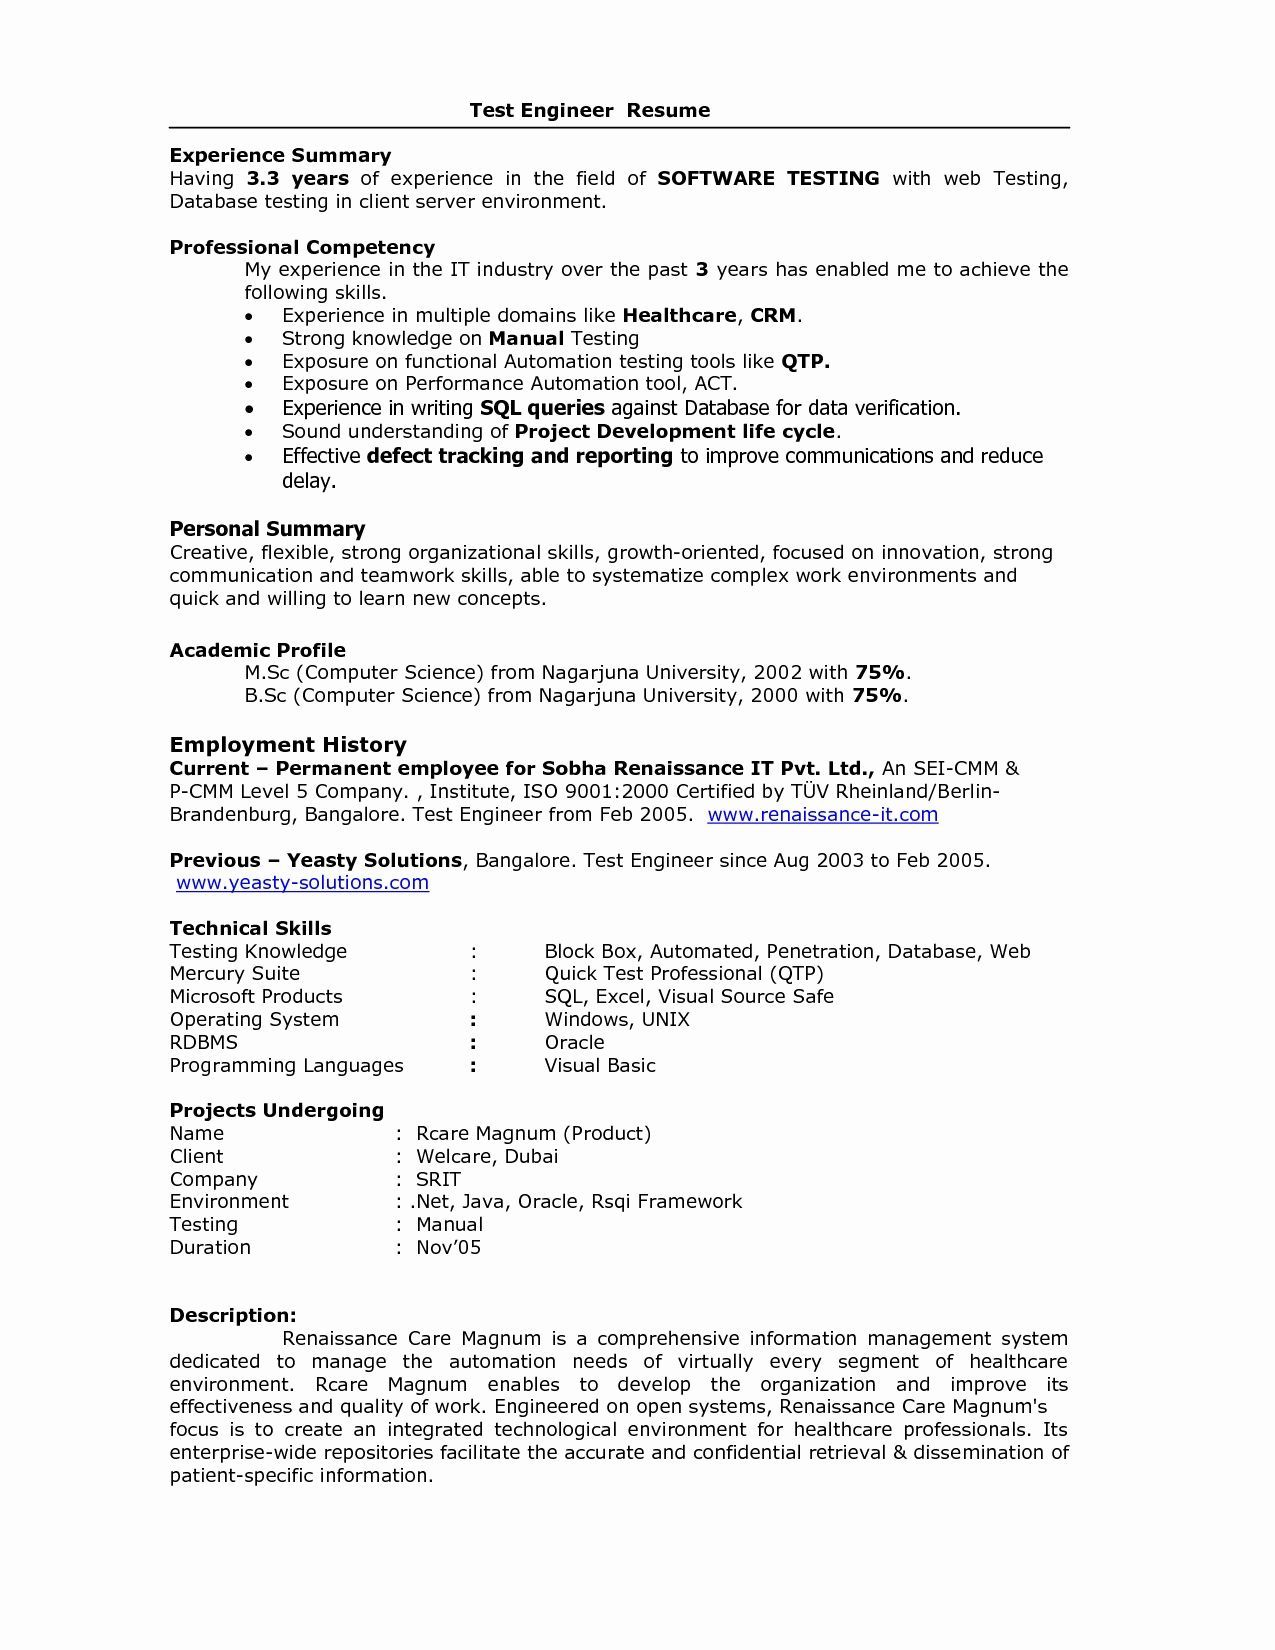 resume format for years experience in testing software best sample operations manager Resume Sample Resume For 3 Years Experience